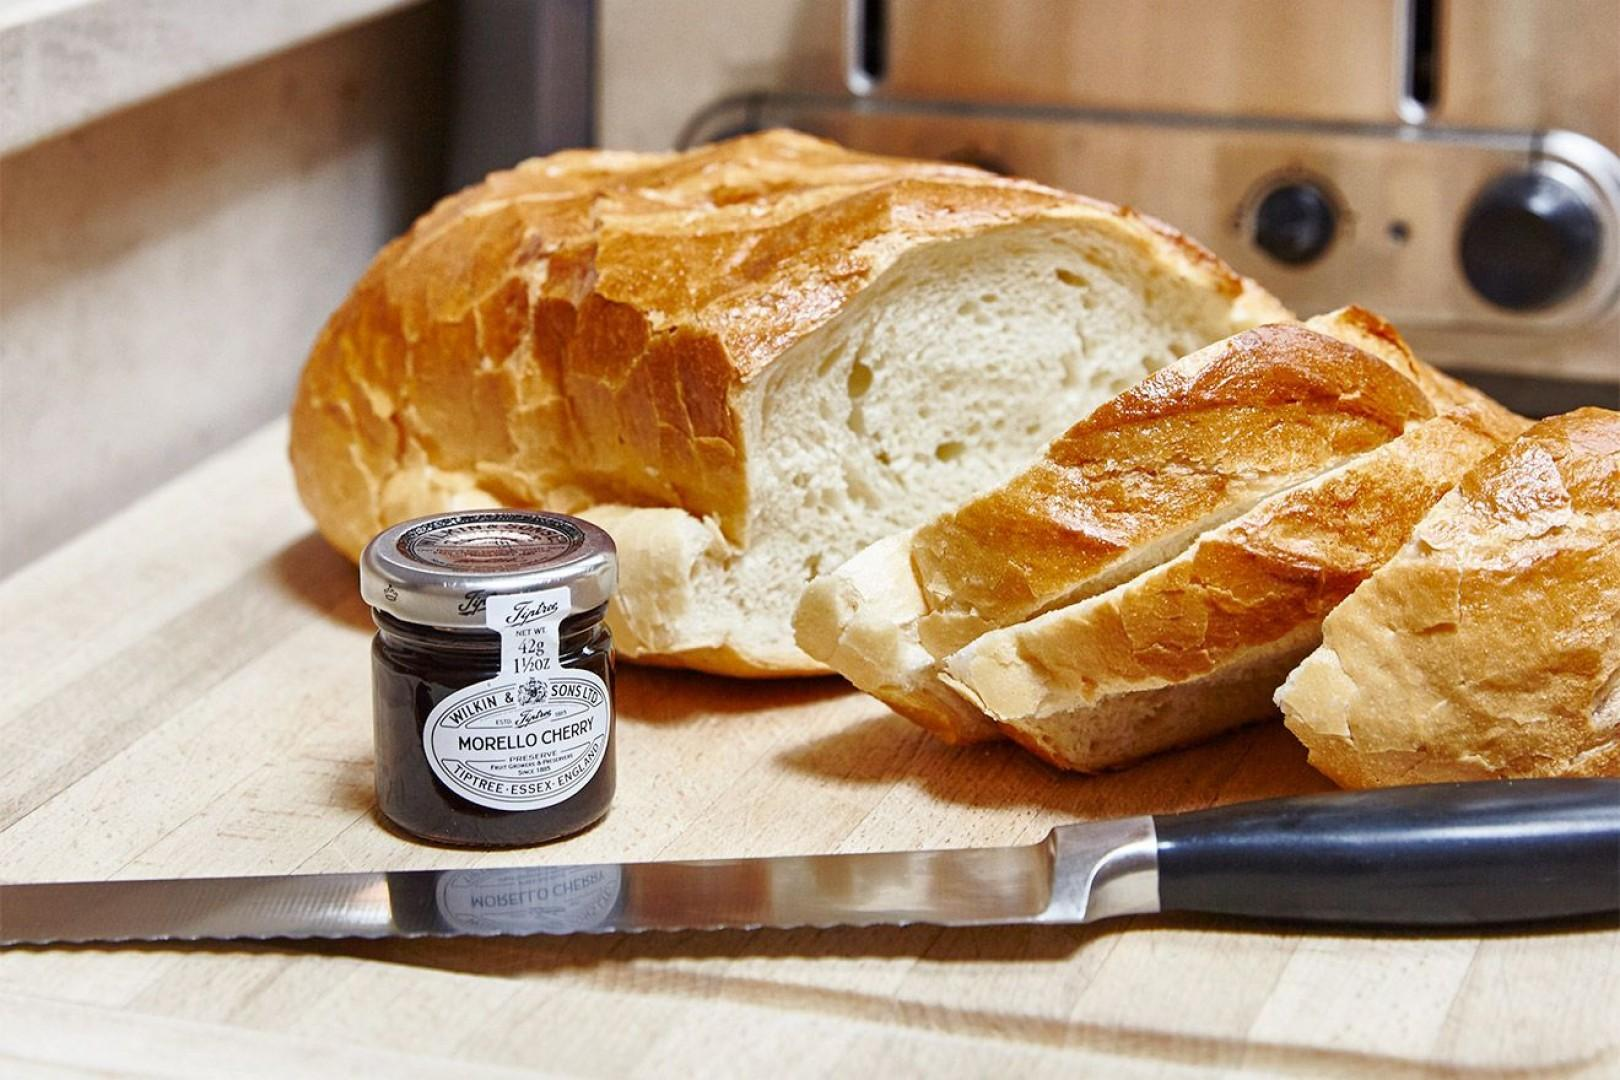 Prepare your breakfasts at home with locally made products